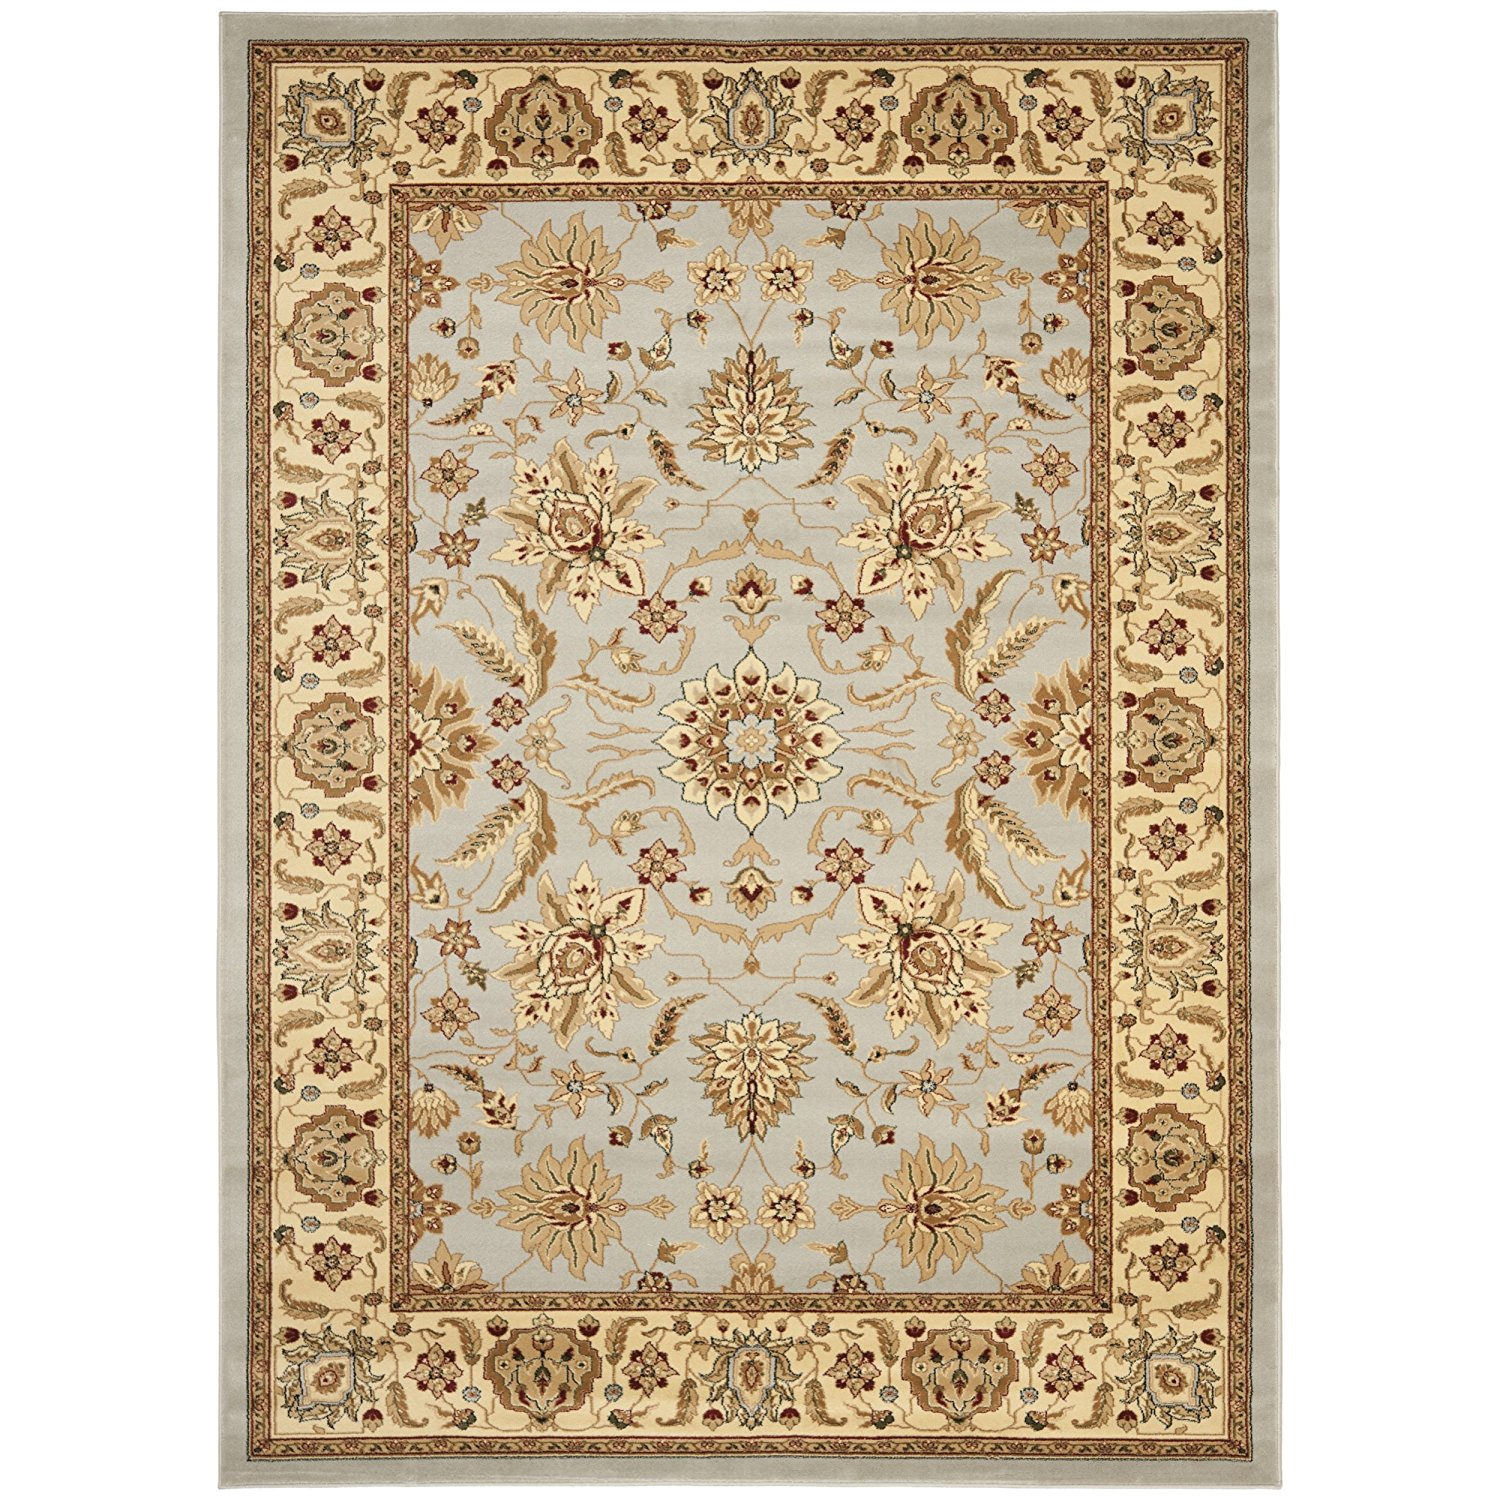 "Safavieh Lyndhurst Collection LNH216G Traditional Oriental Grey and Beige Rectangle Area Rug (8'11"" x 12')"